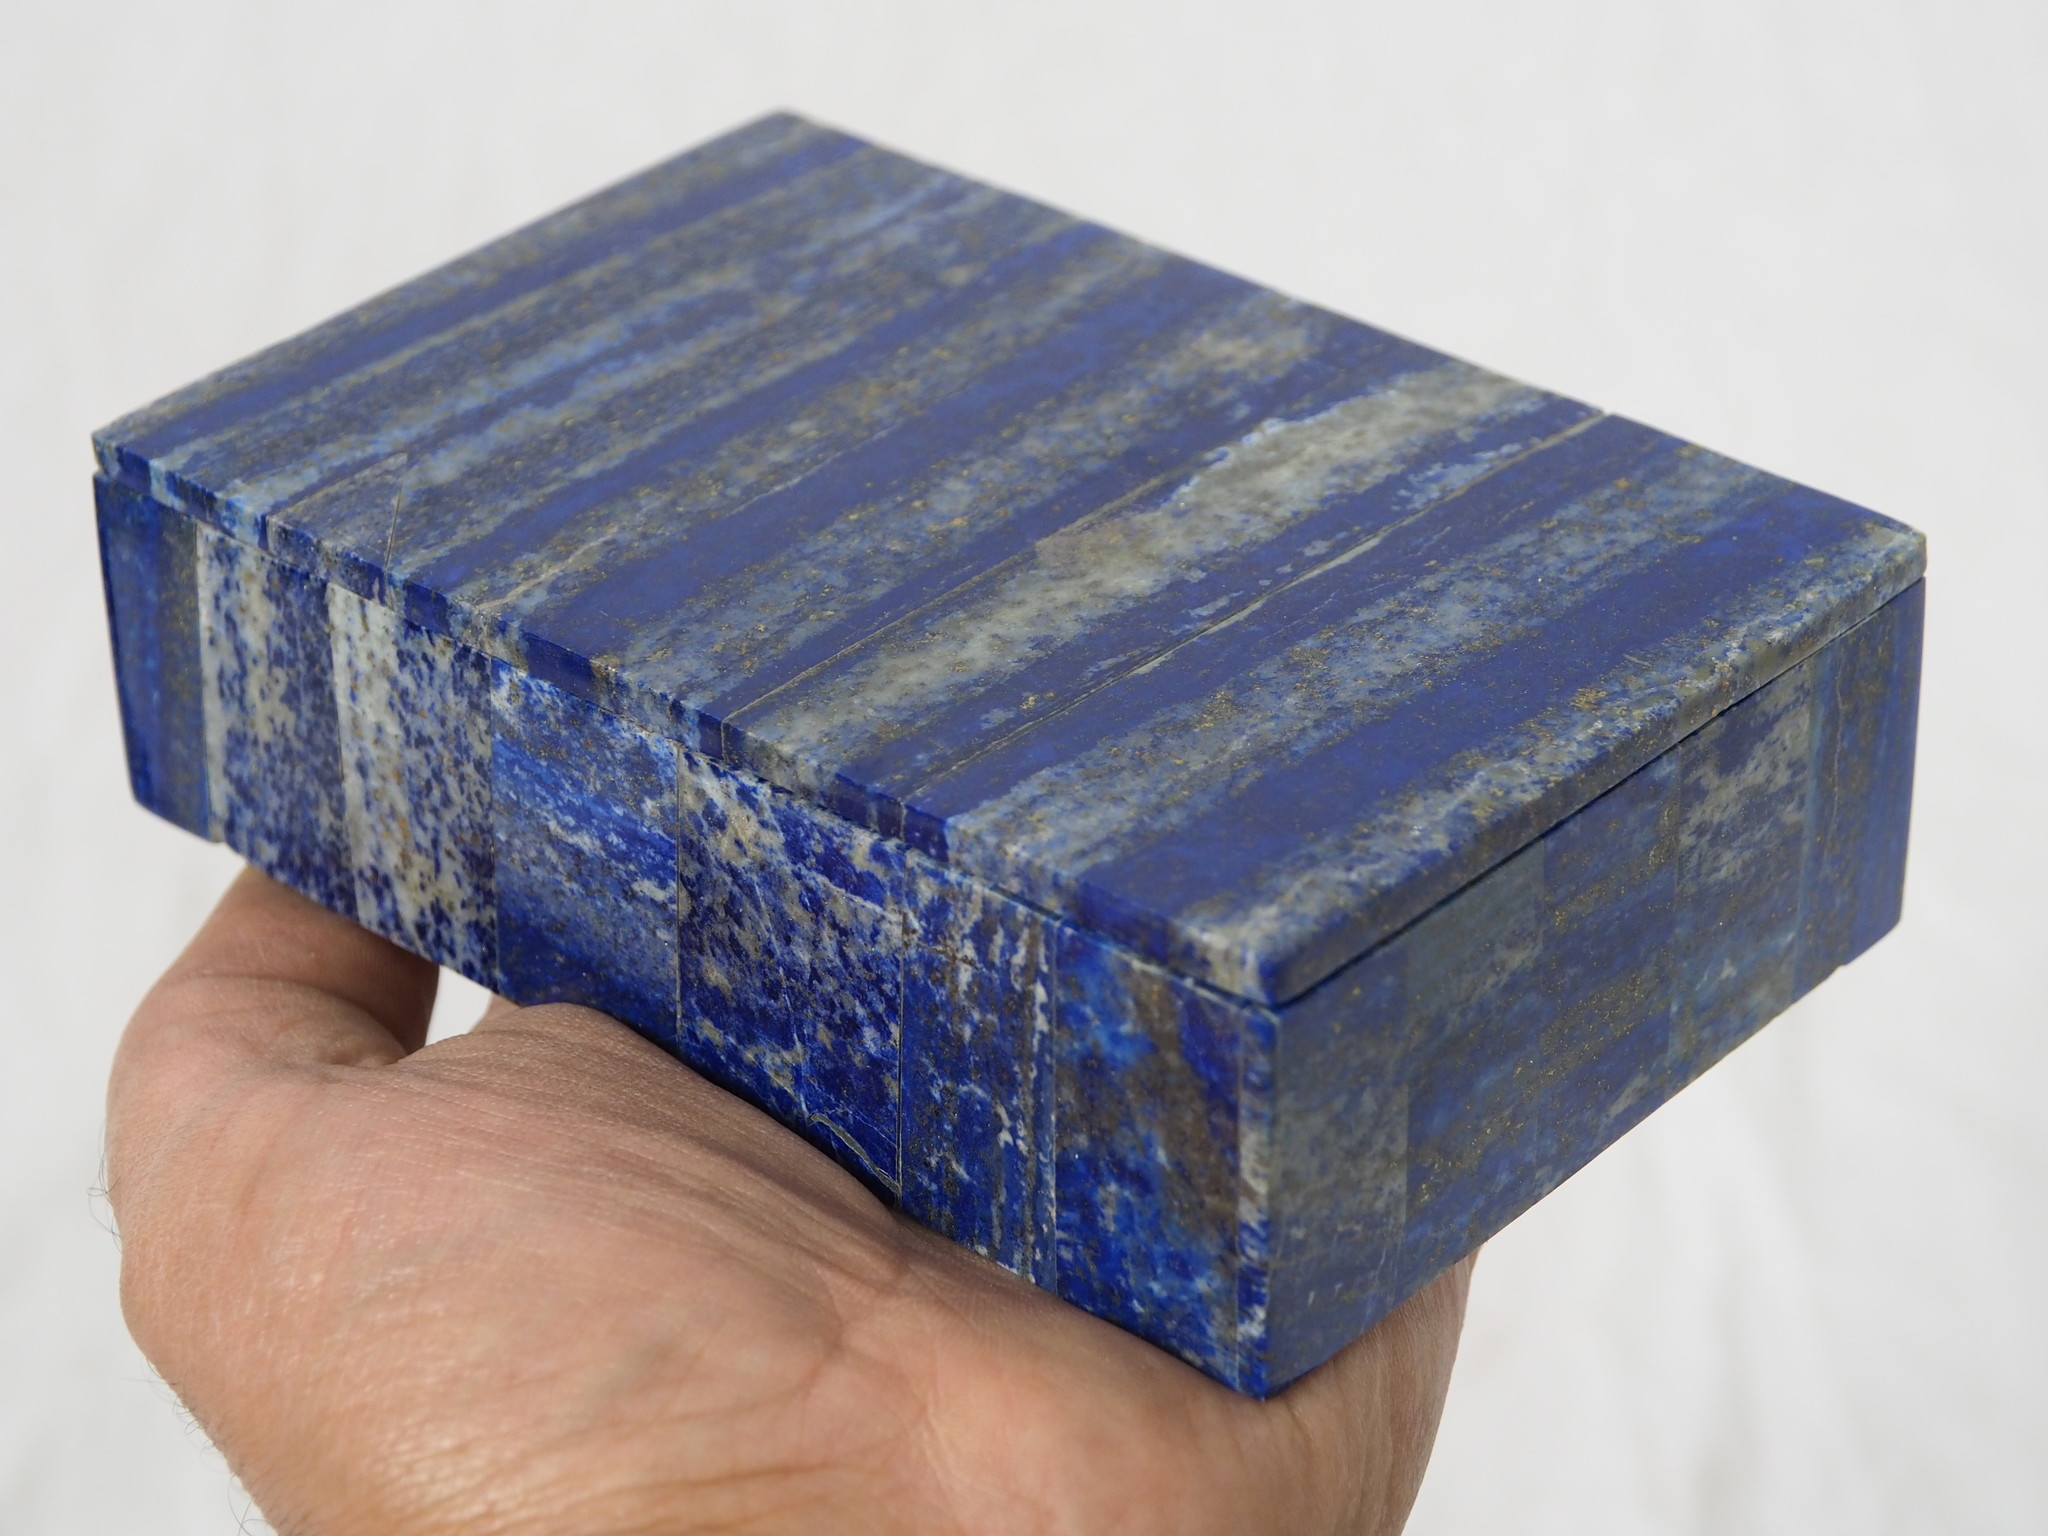 Hand Crafted stunning genuine Afghan Lapis Lazuli Gemstone  Box   from Afghanistan No: 21/F